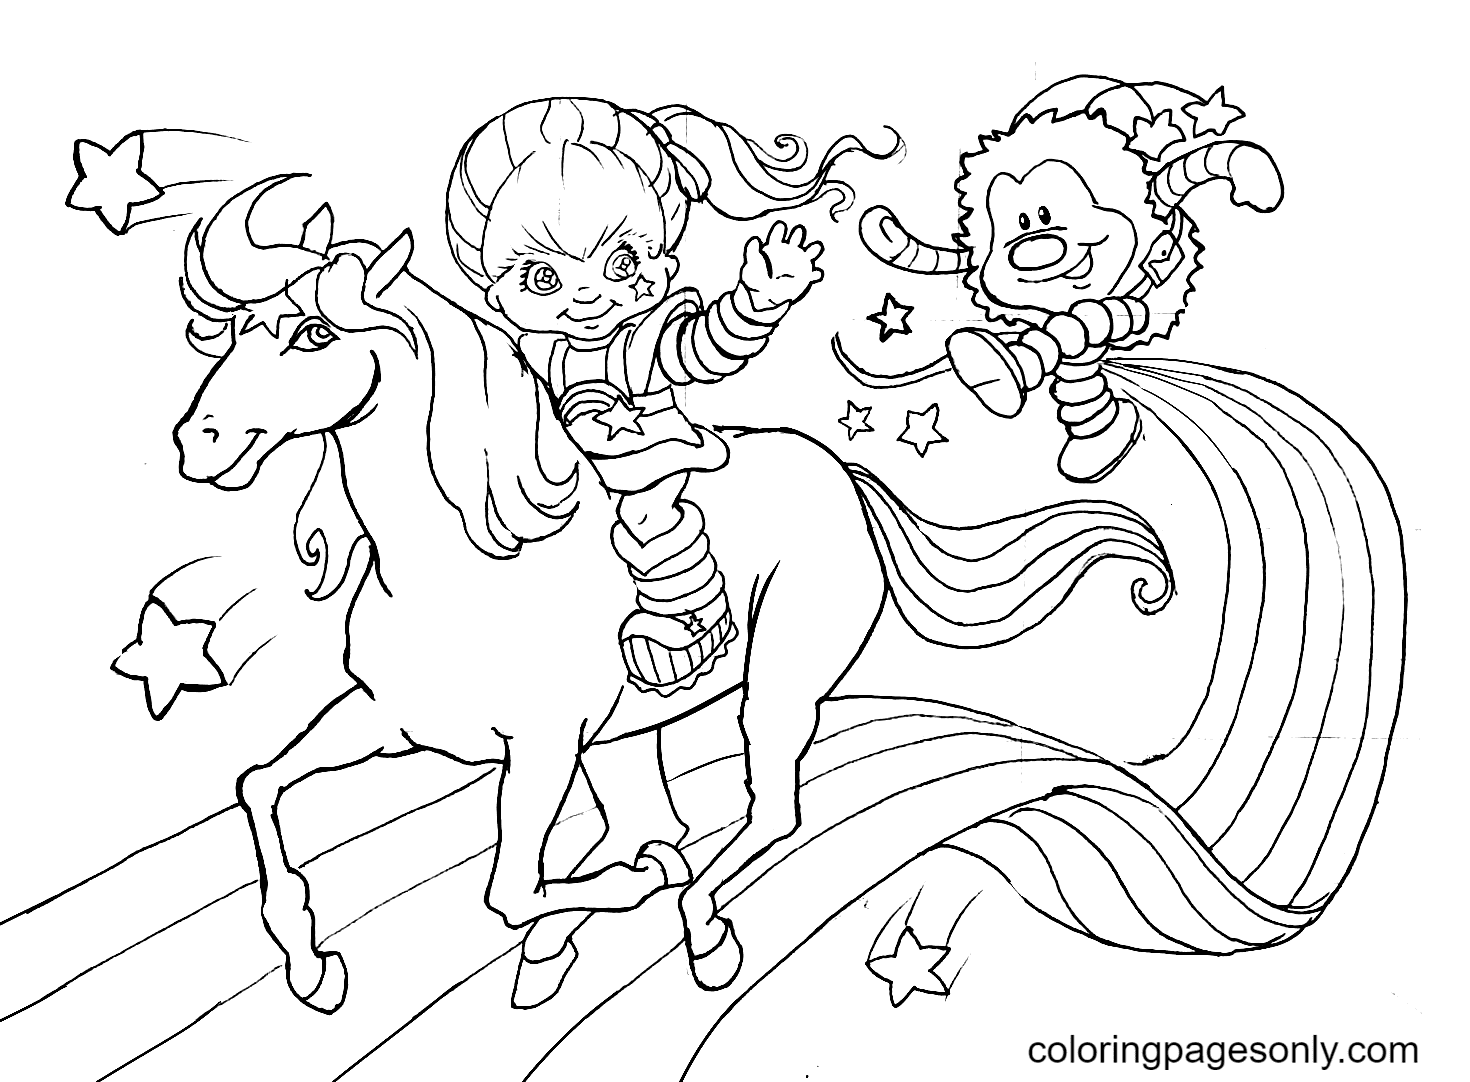 Little Girl Riding a Horse On a Rainbow Coloring Page